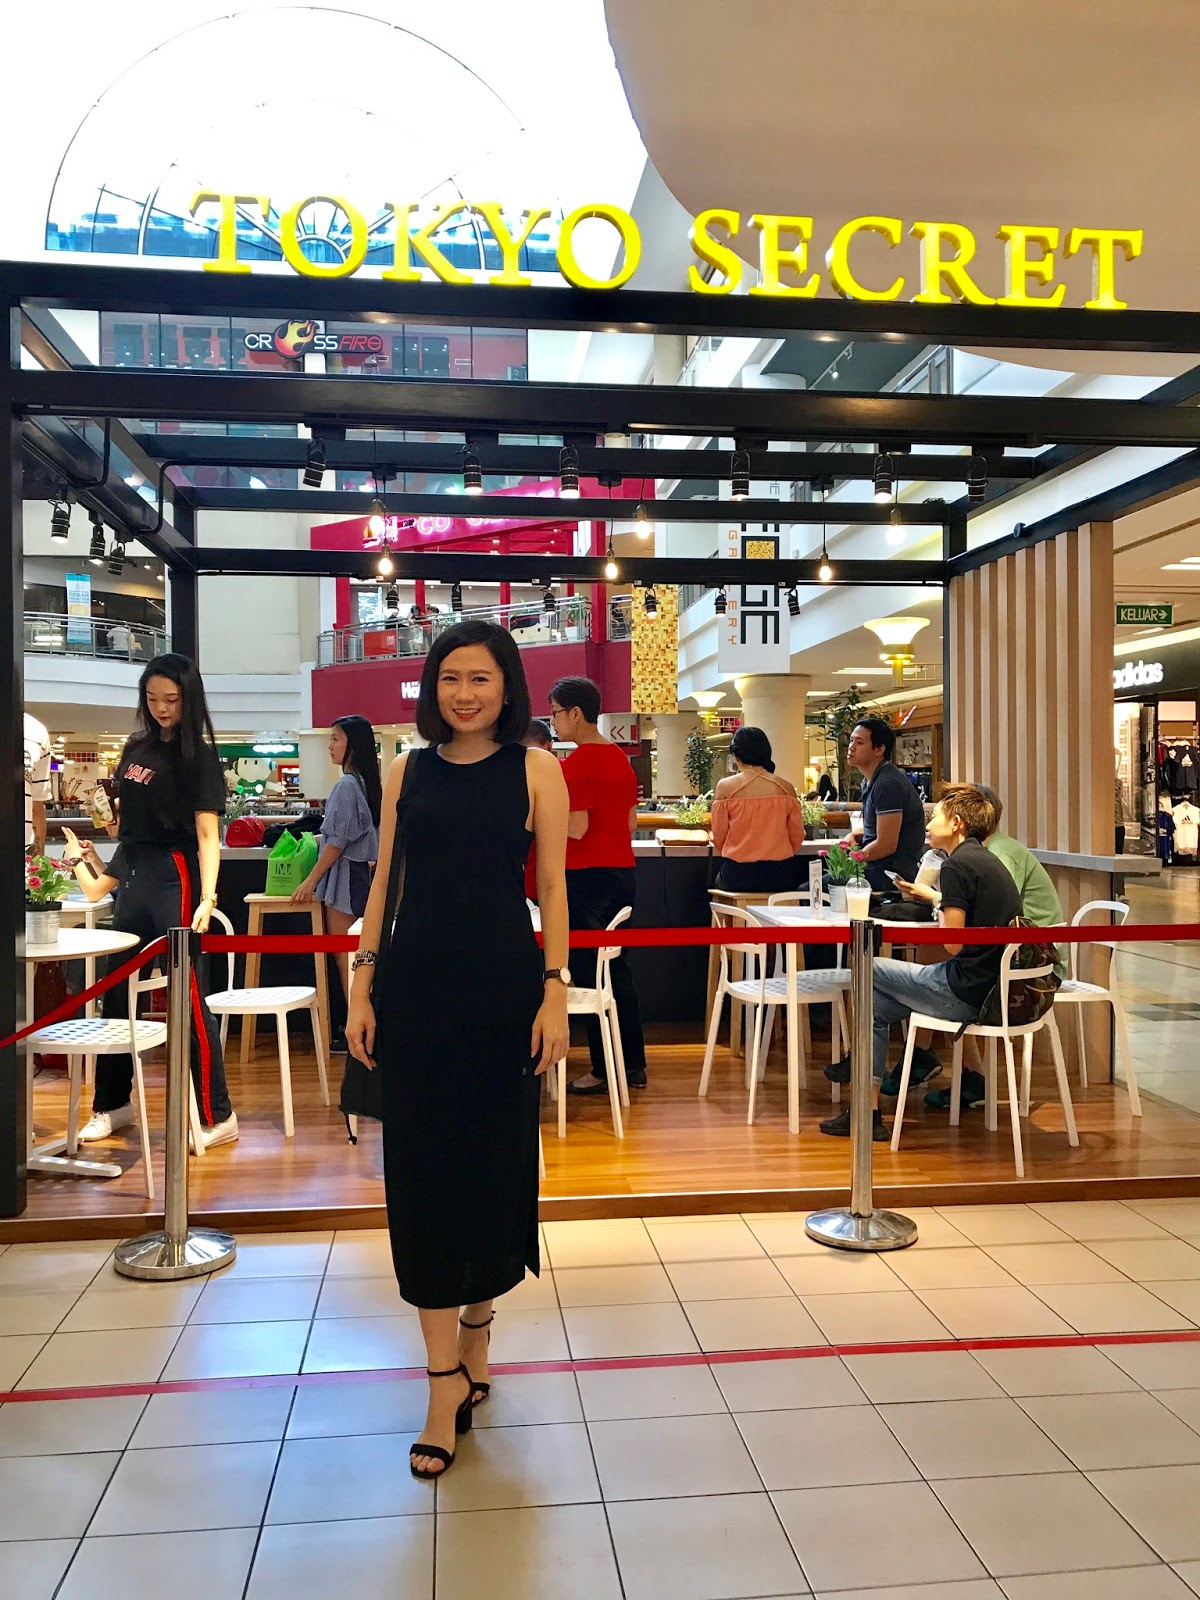 Celebrating Tokyo Secret happy 1st anniversary at 1 Utama Mall